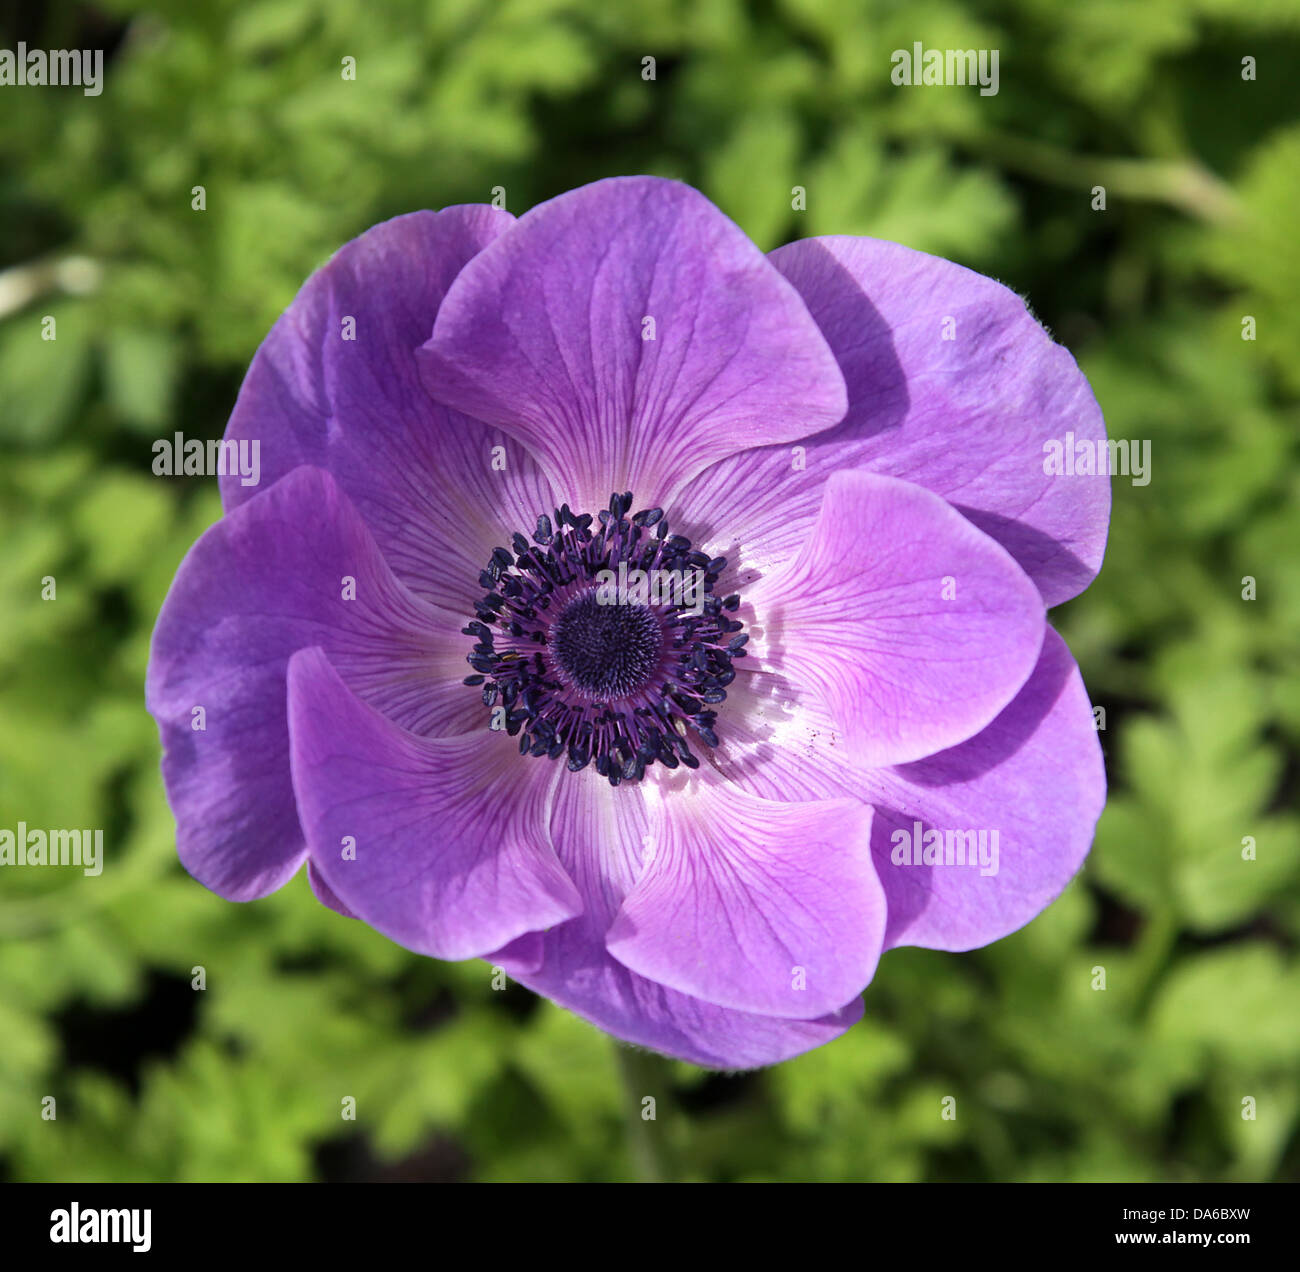 Purple Poppy is an angiosperm or flowering plant of the family Papaveraceae - Stock Image